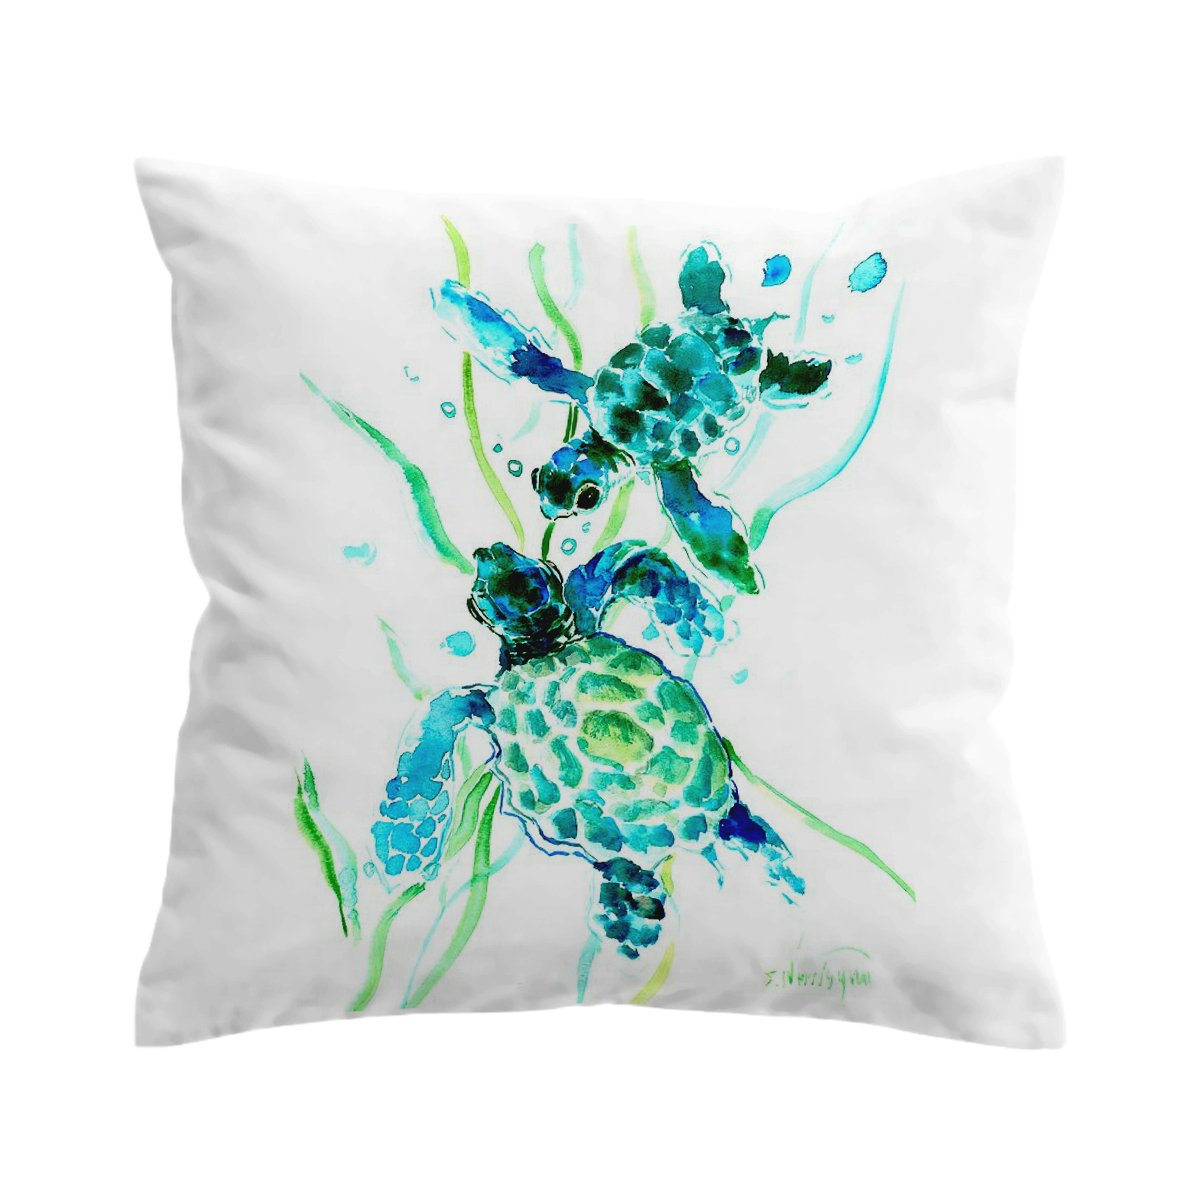 Lovely Little Sea Turtles Pillow Cover-Coastal Passion